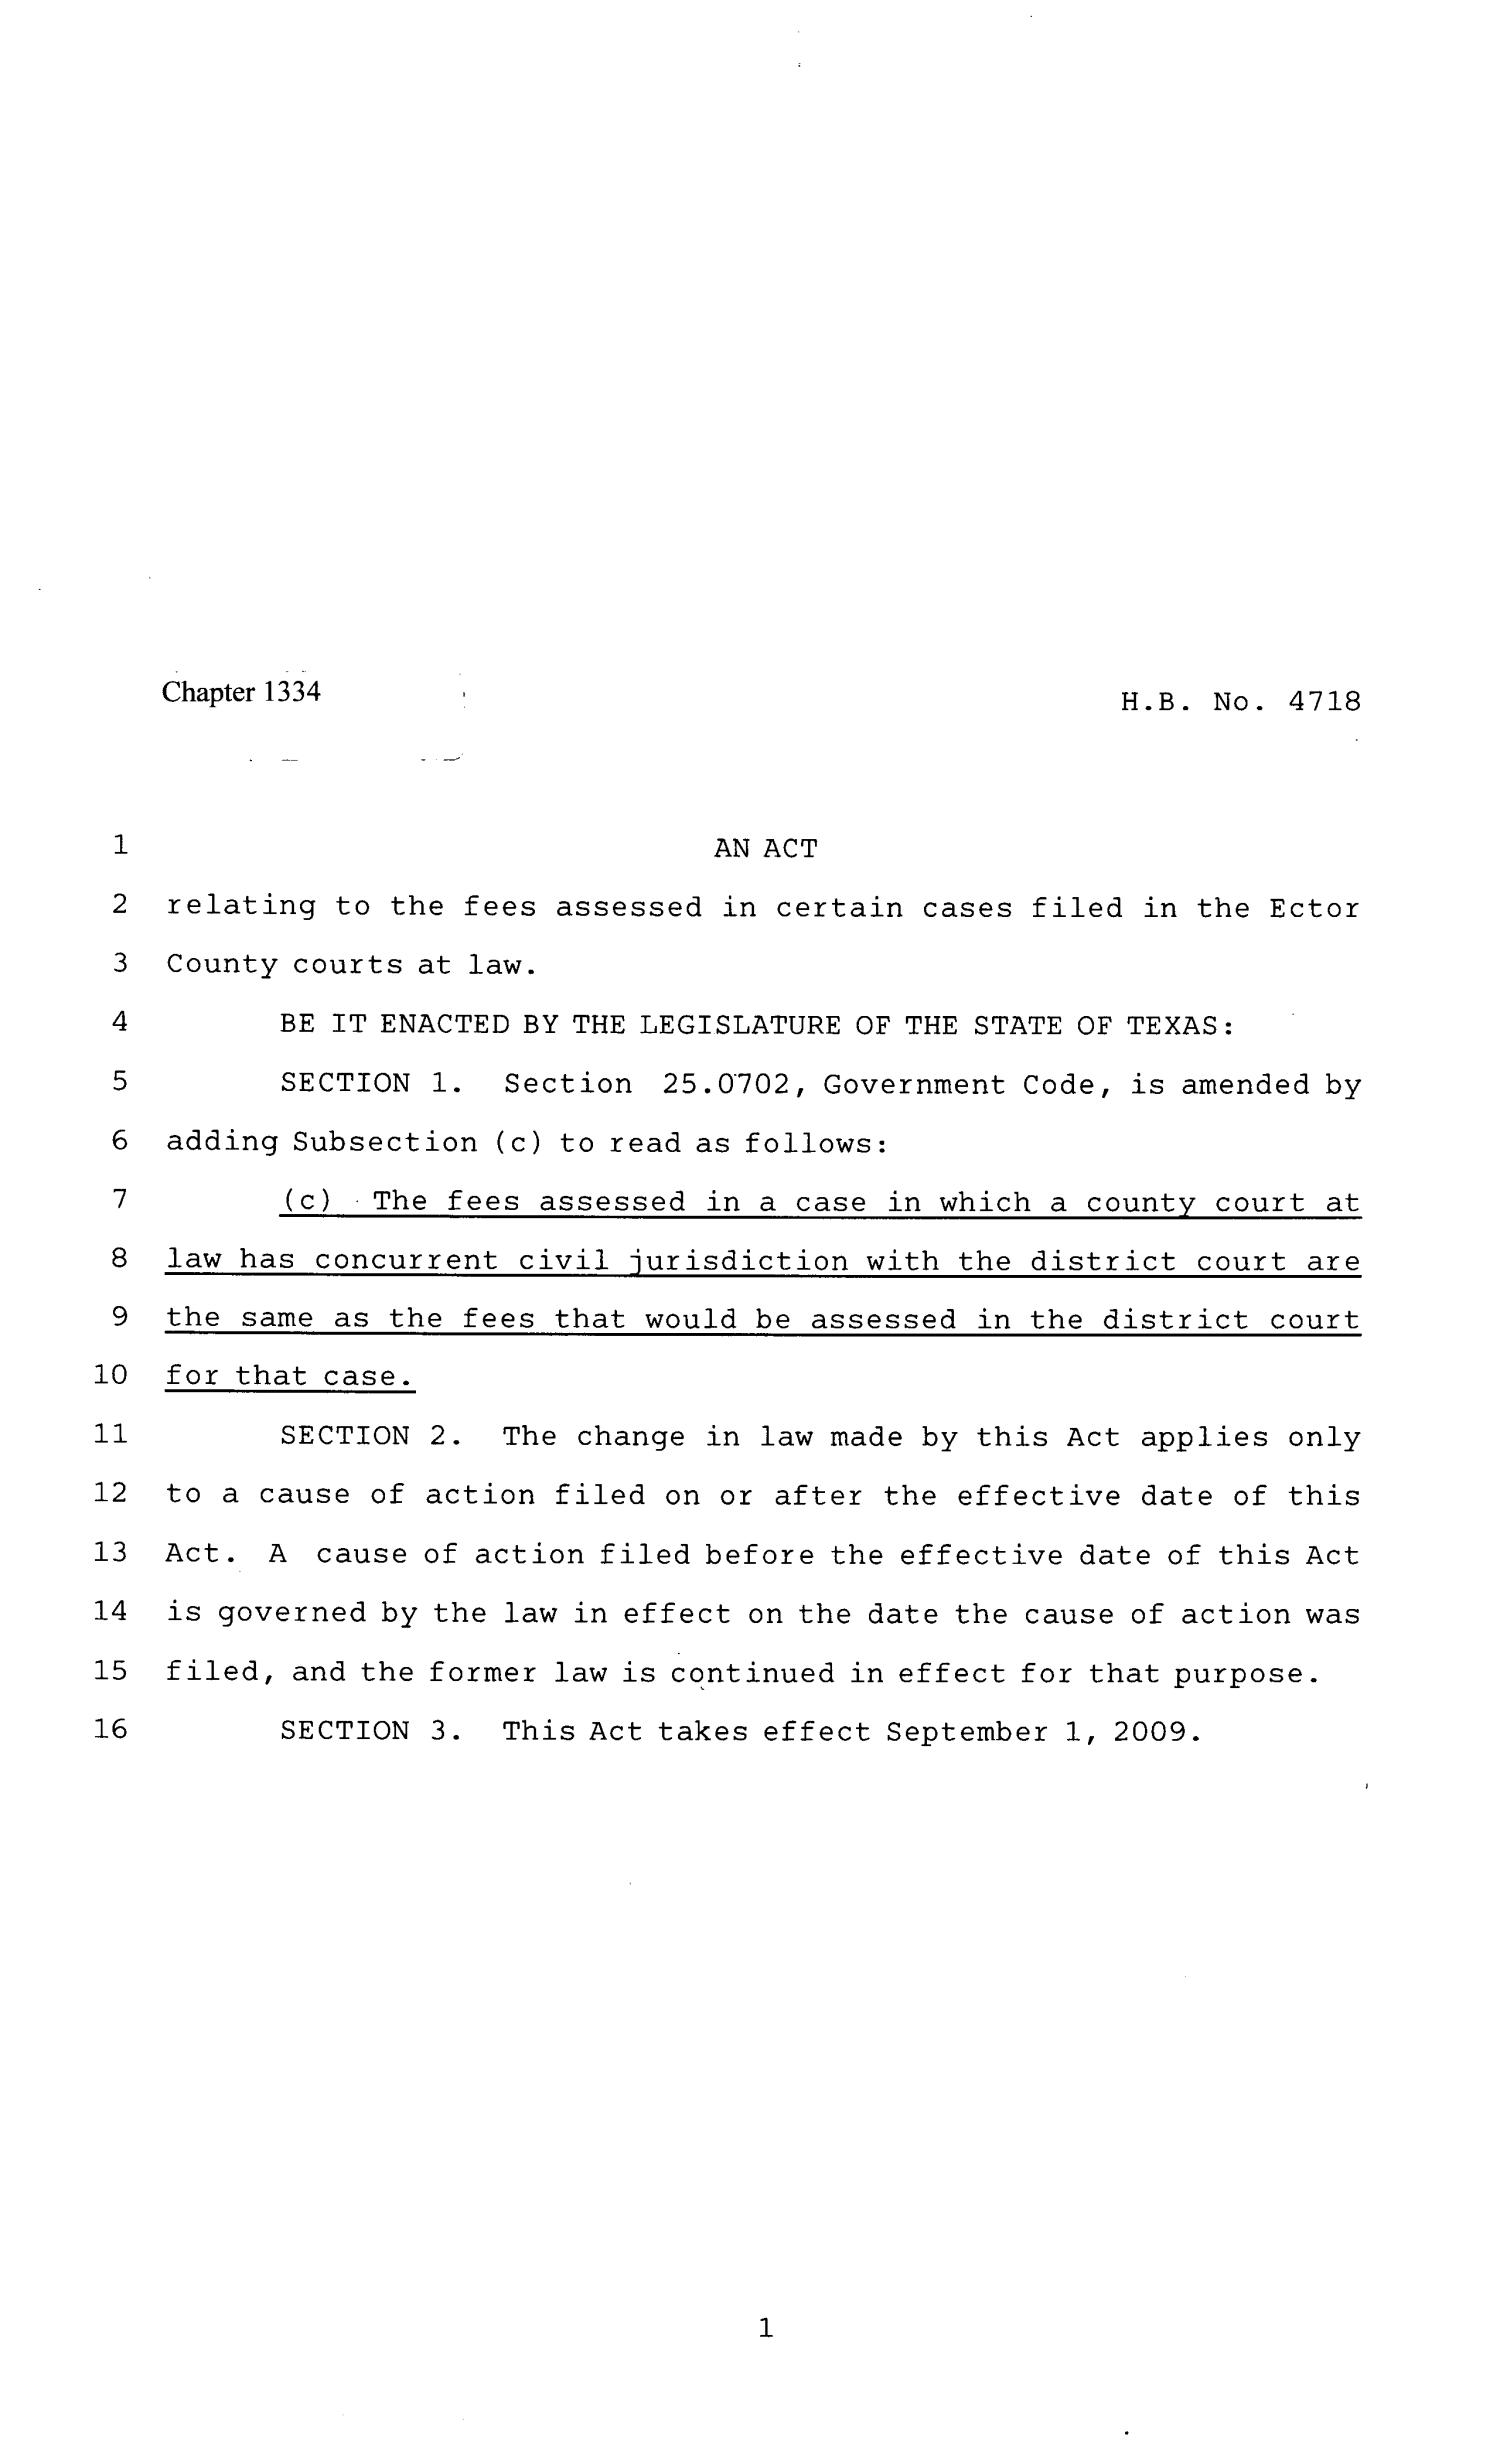 81st Texas Legislature, Regular Session, House Bill 4718, Chapter 1334                                                                                                      [Sequence #]: 1 of 2